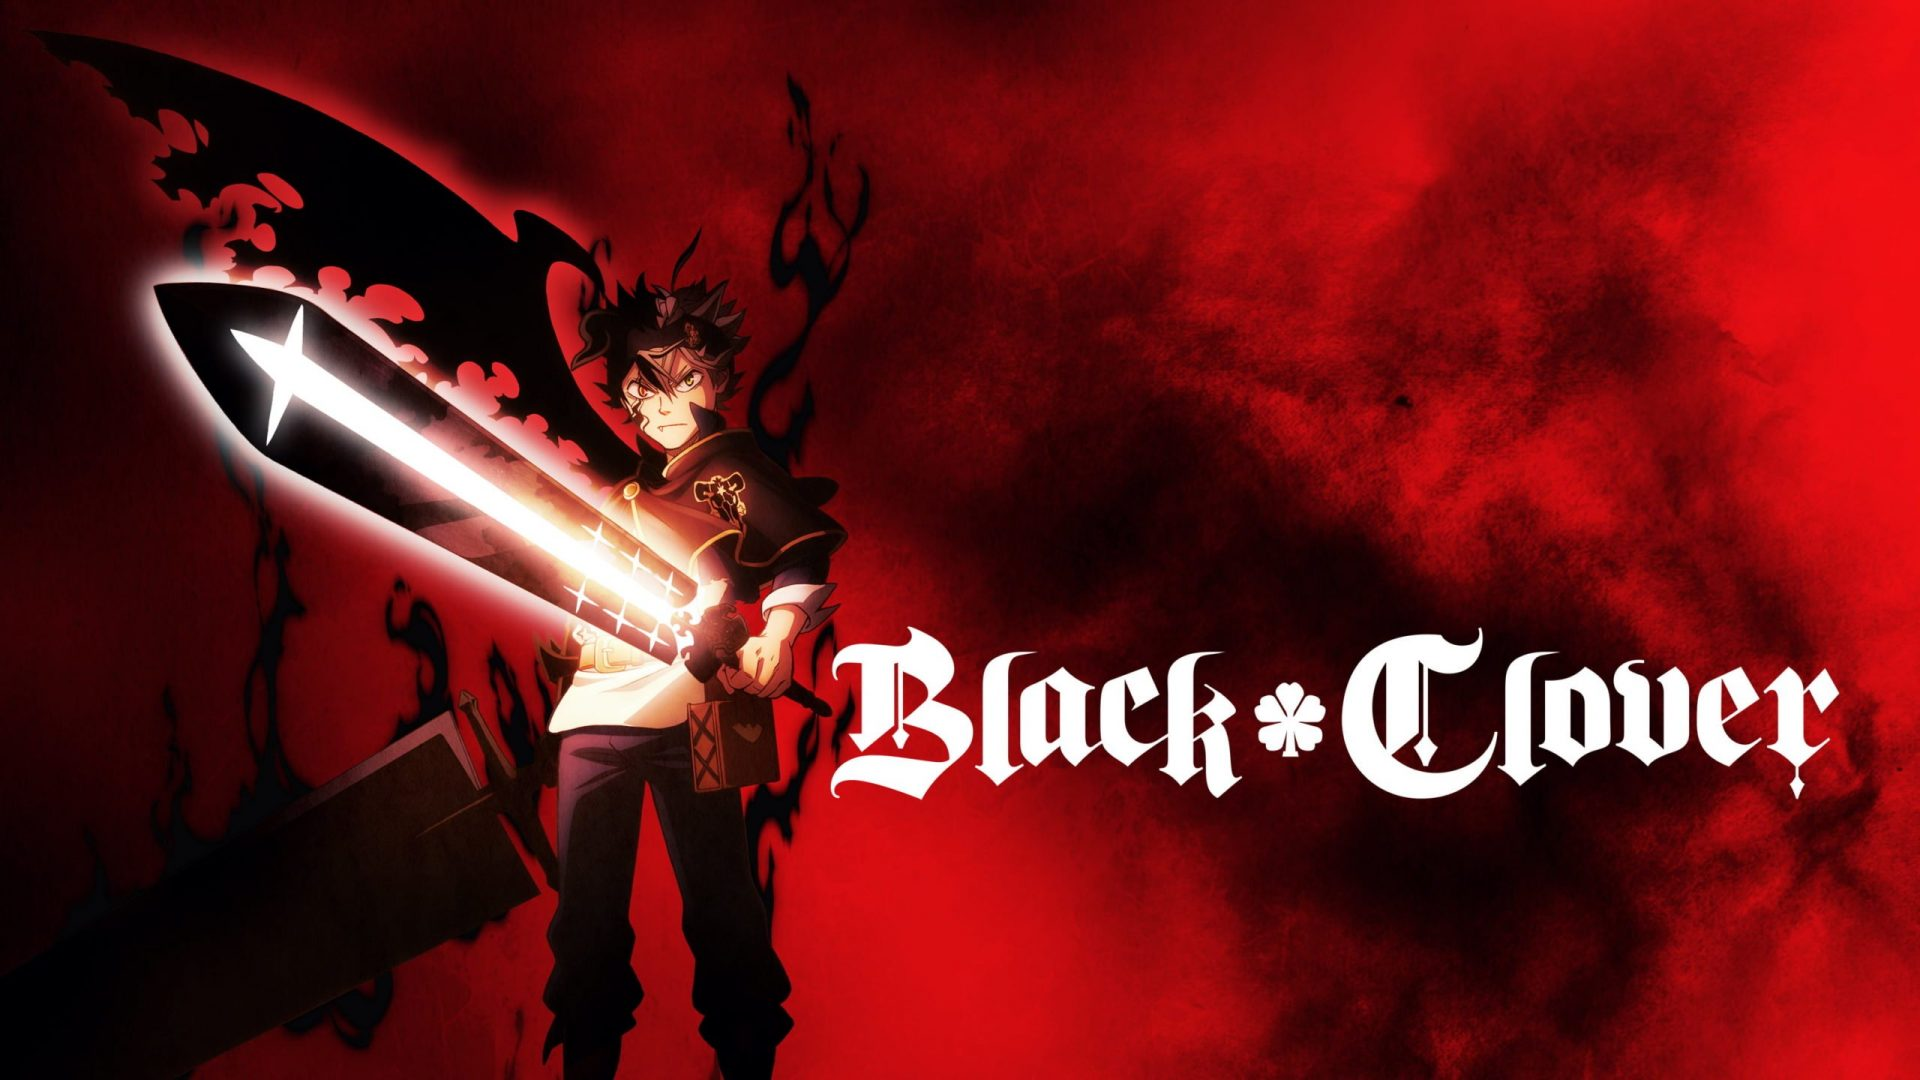 Black Clover Episode 162 Release Date, Time and Stream Anime Online